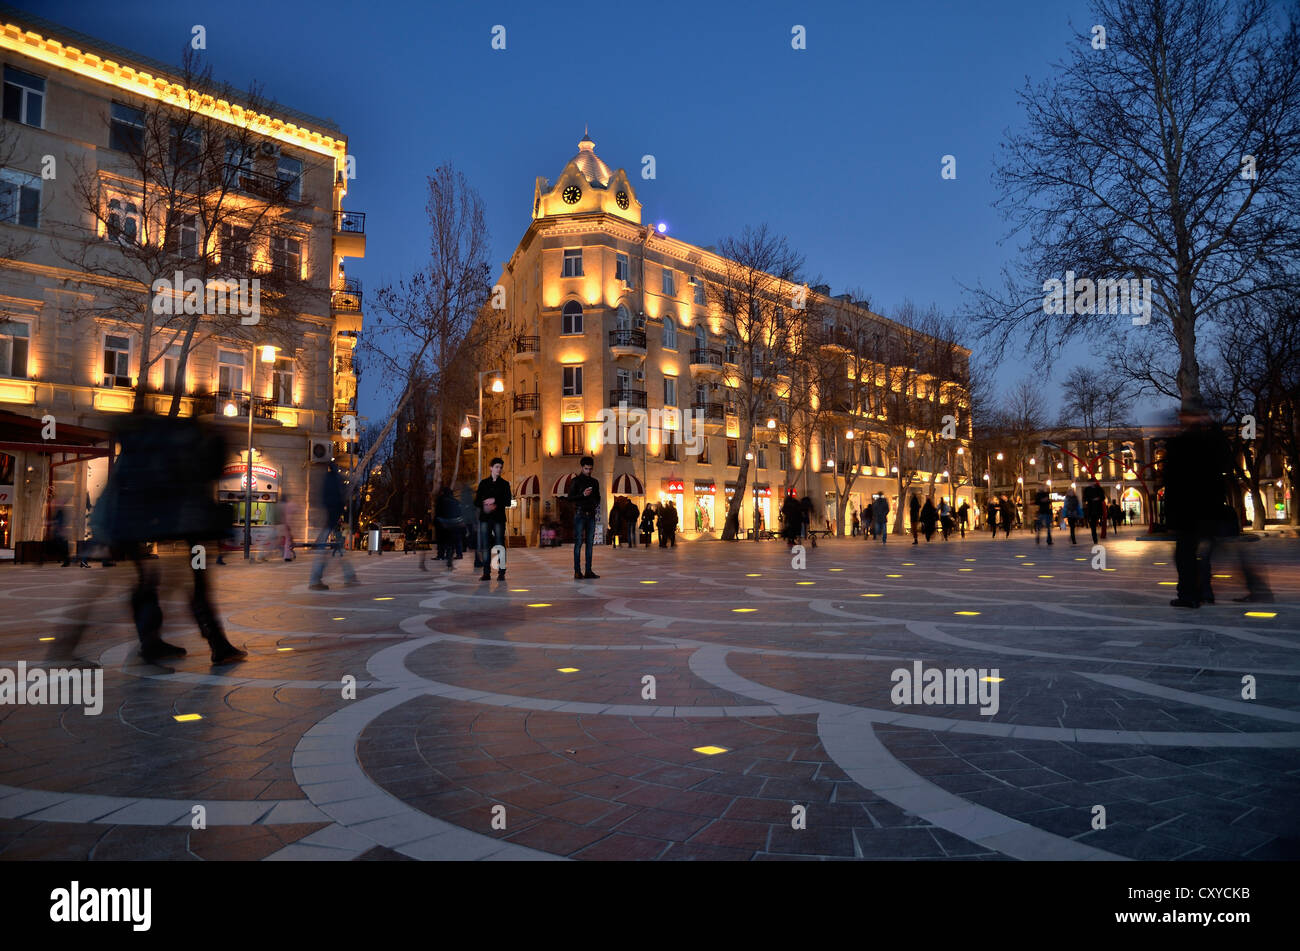 Street scene on the illuminated Fountain Square in the historic town centre of Baku, UNESCO World Heritage Site, - Stock Image